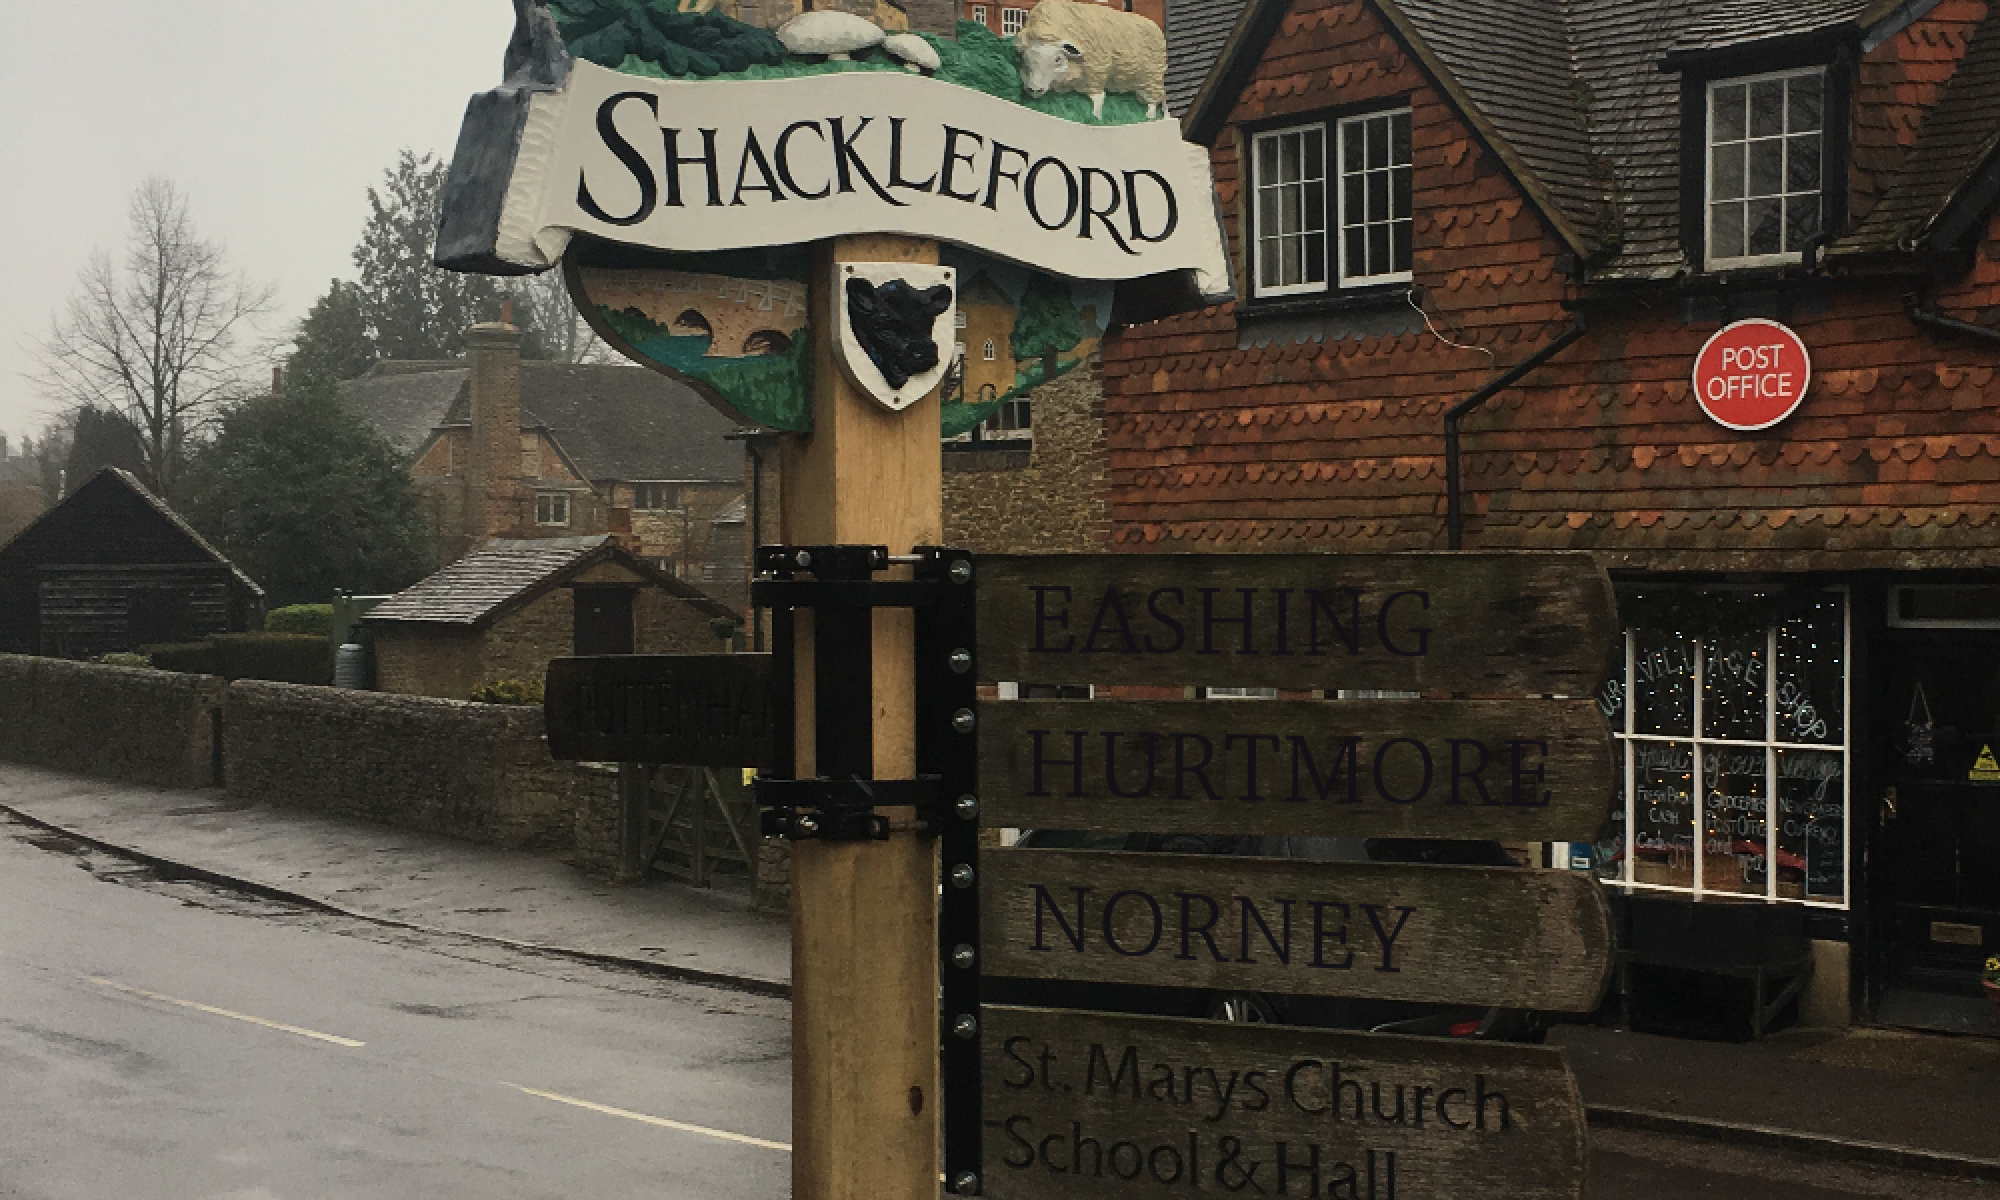 Shackleford Parish Council